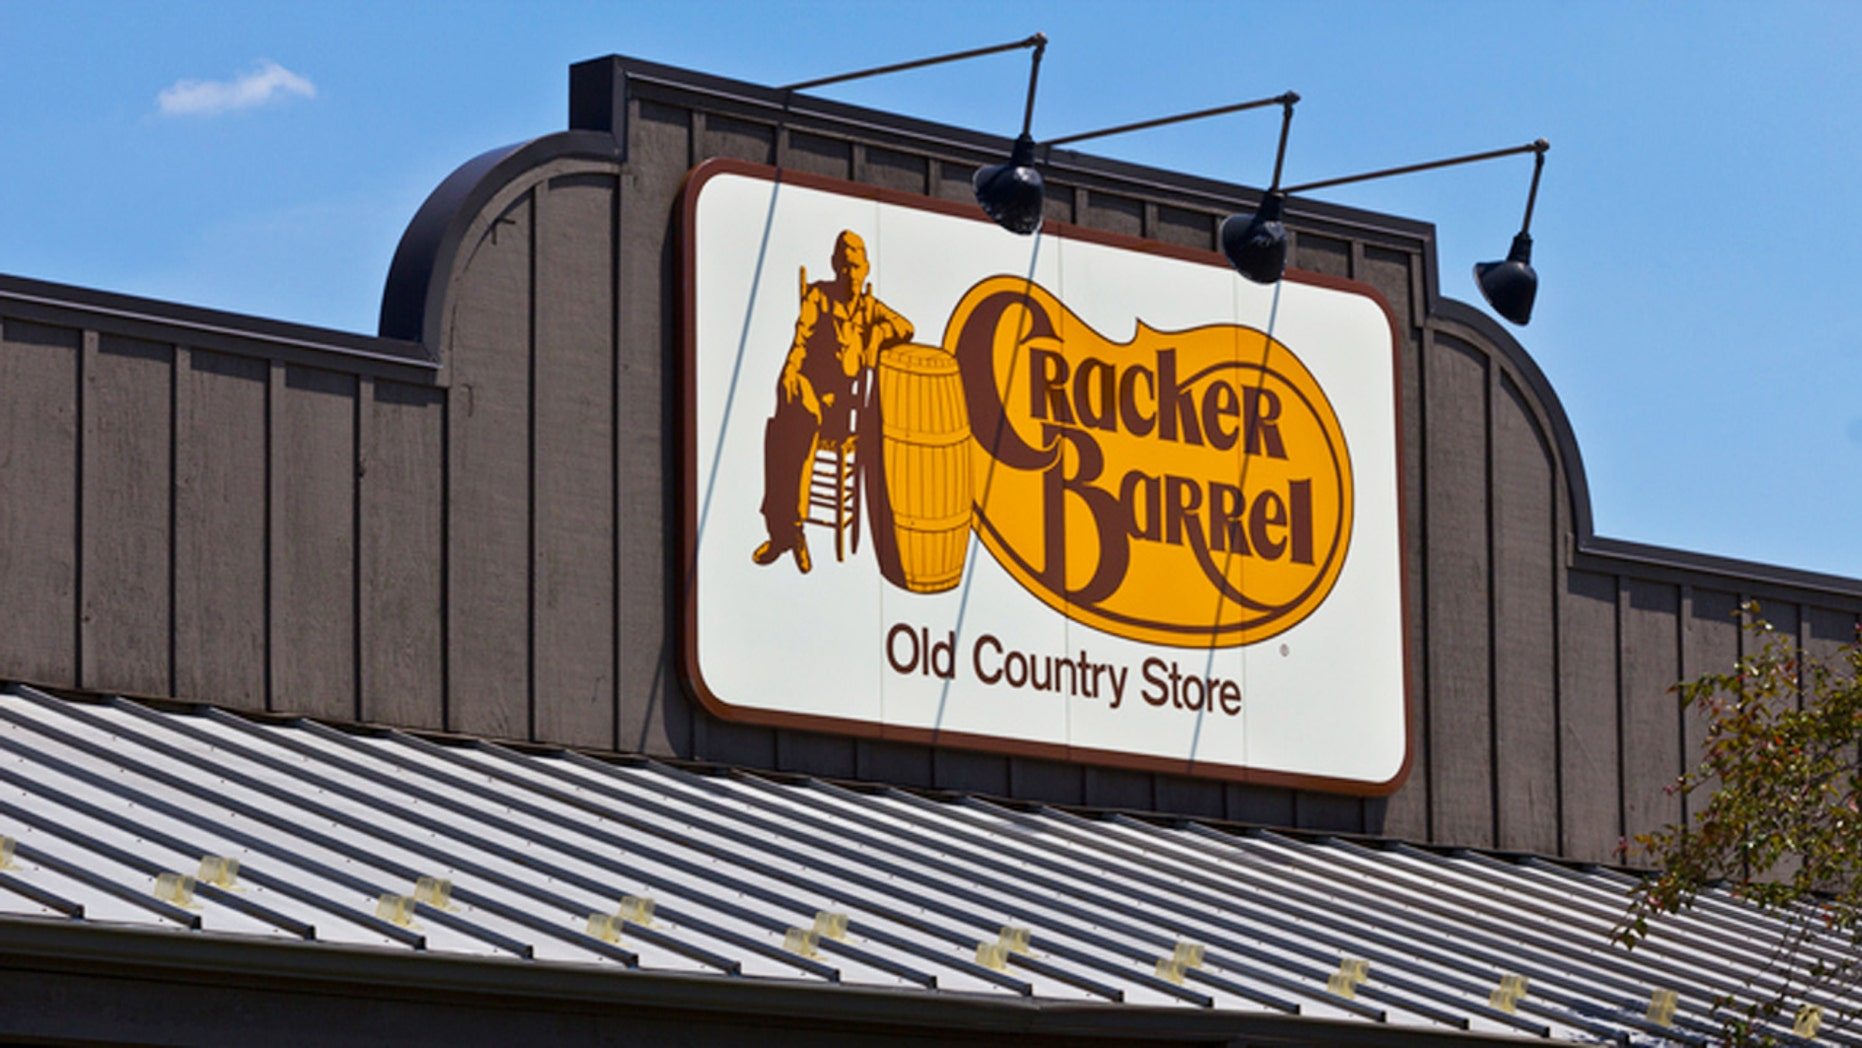 Why Brad's wife was fired from Cracker Barrel remains a mystery.